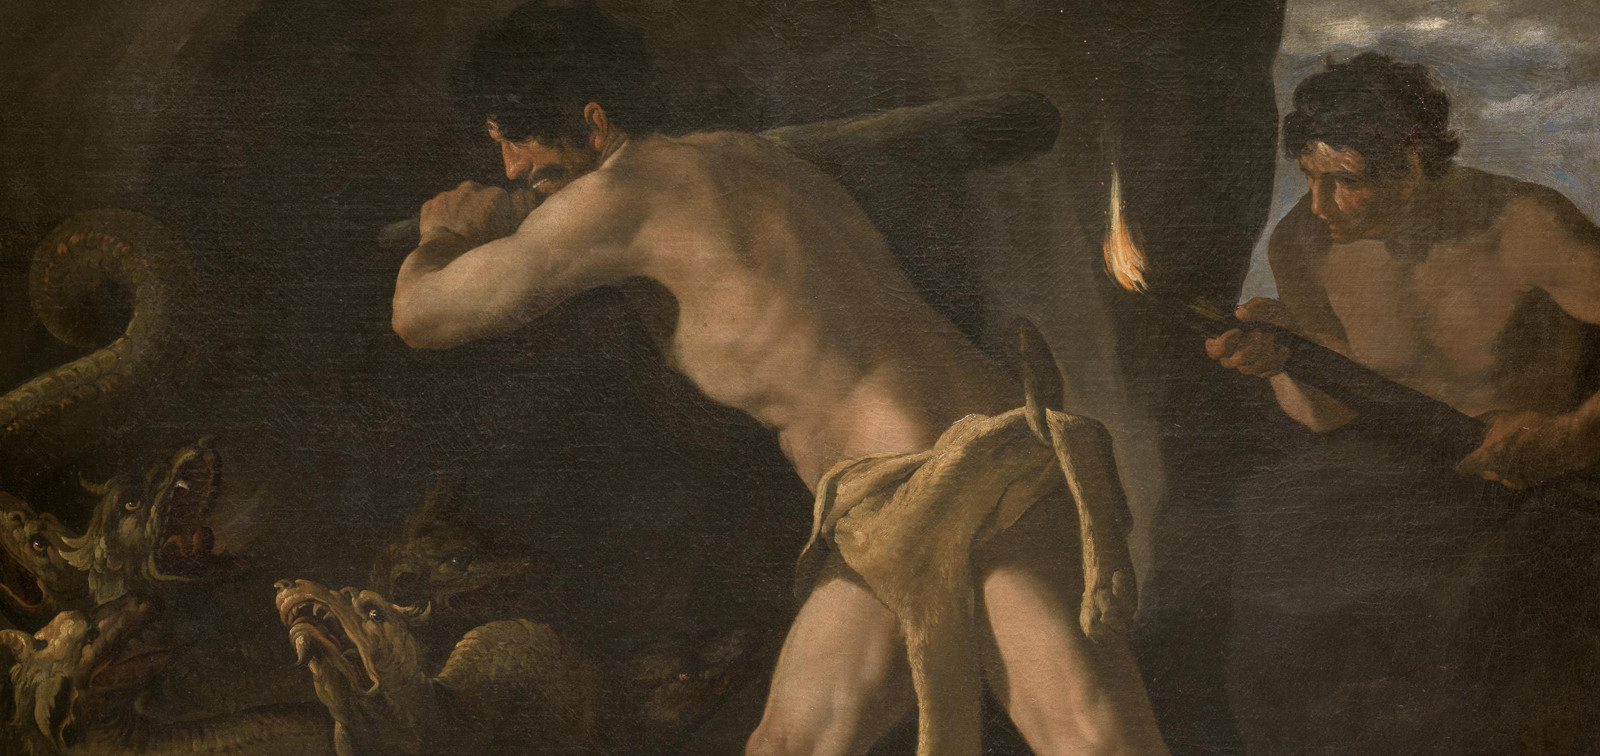 Splendor, Myth and Vision: Nudes from the Prado